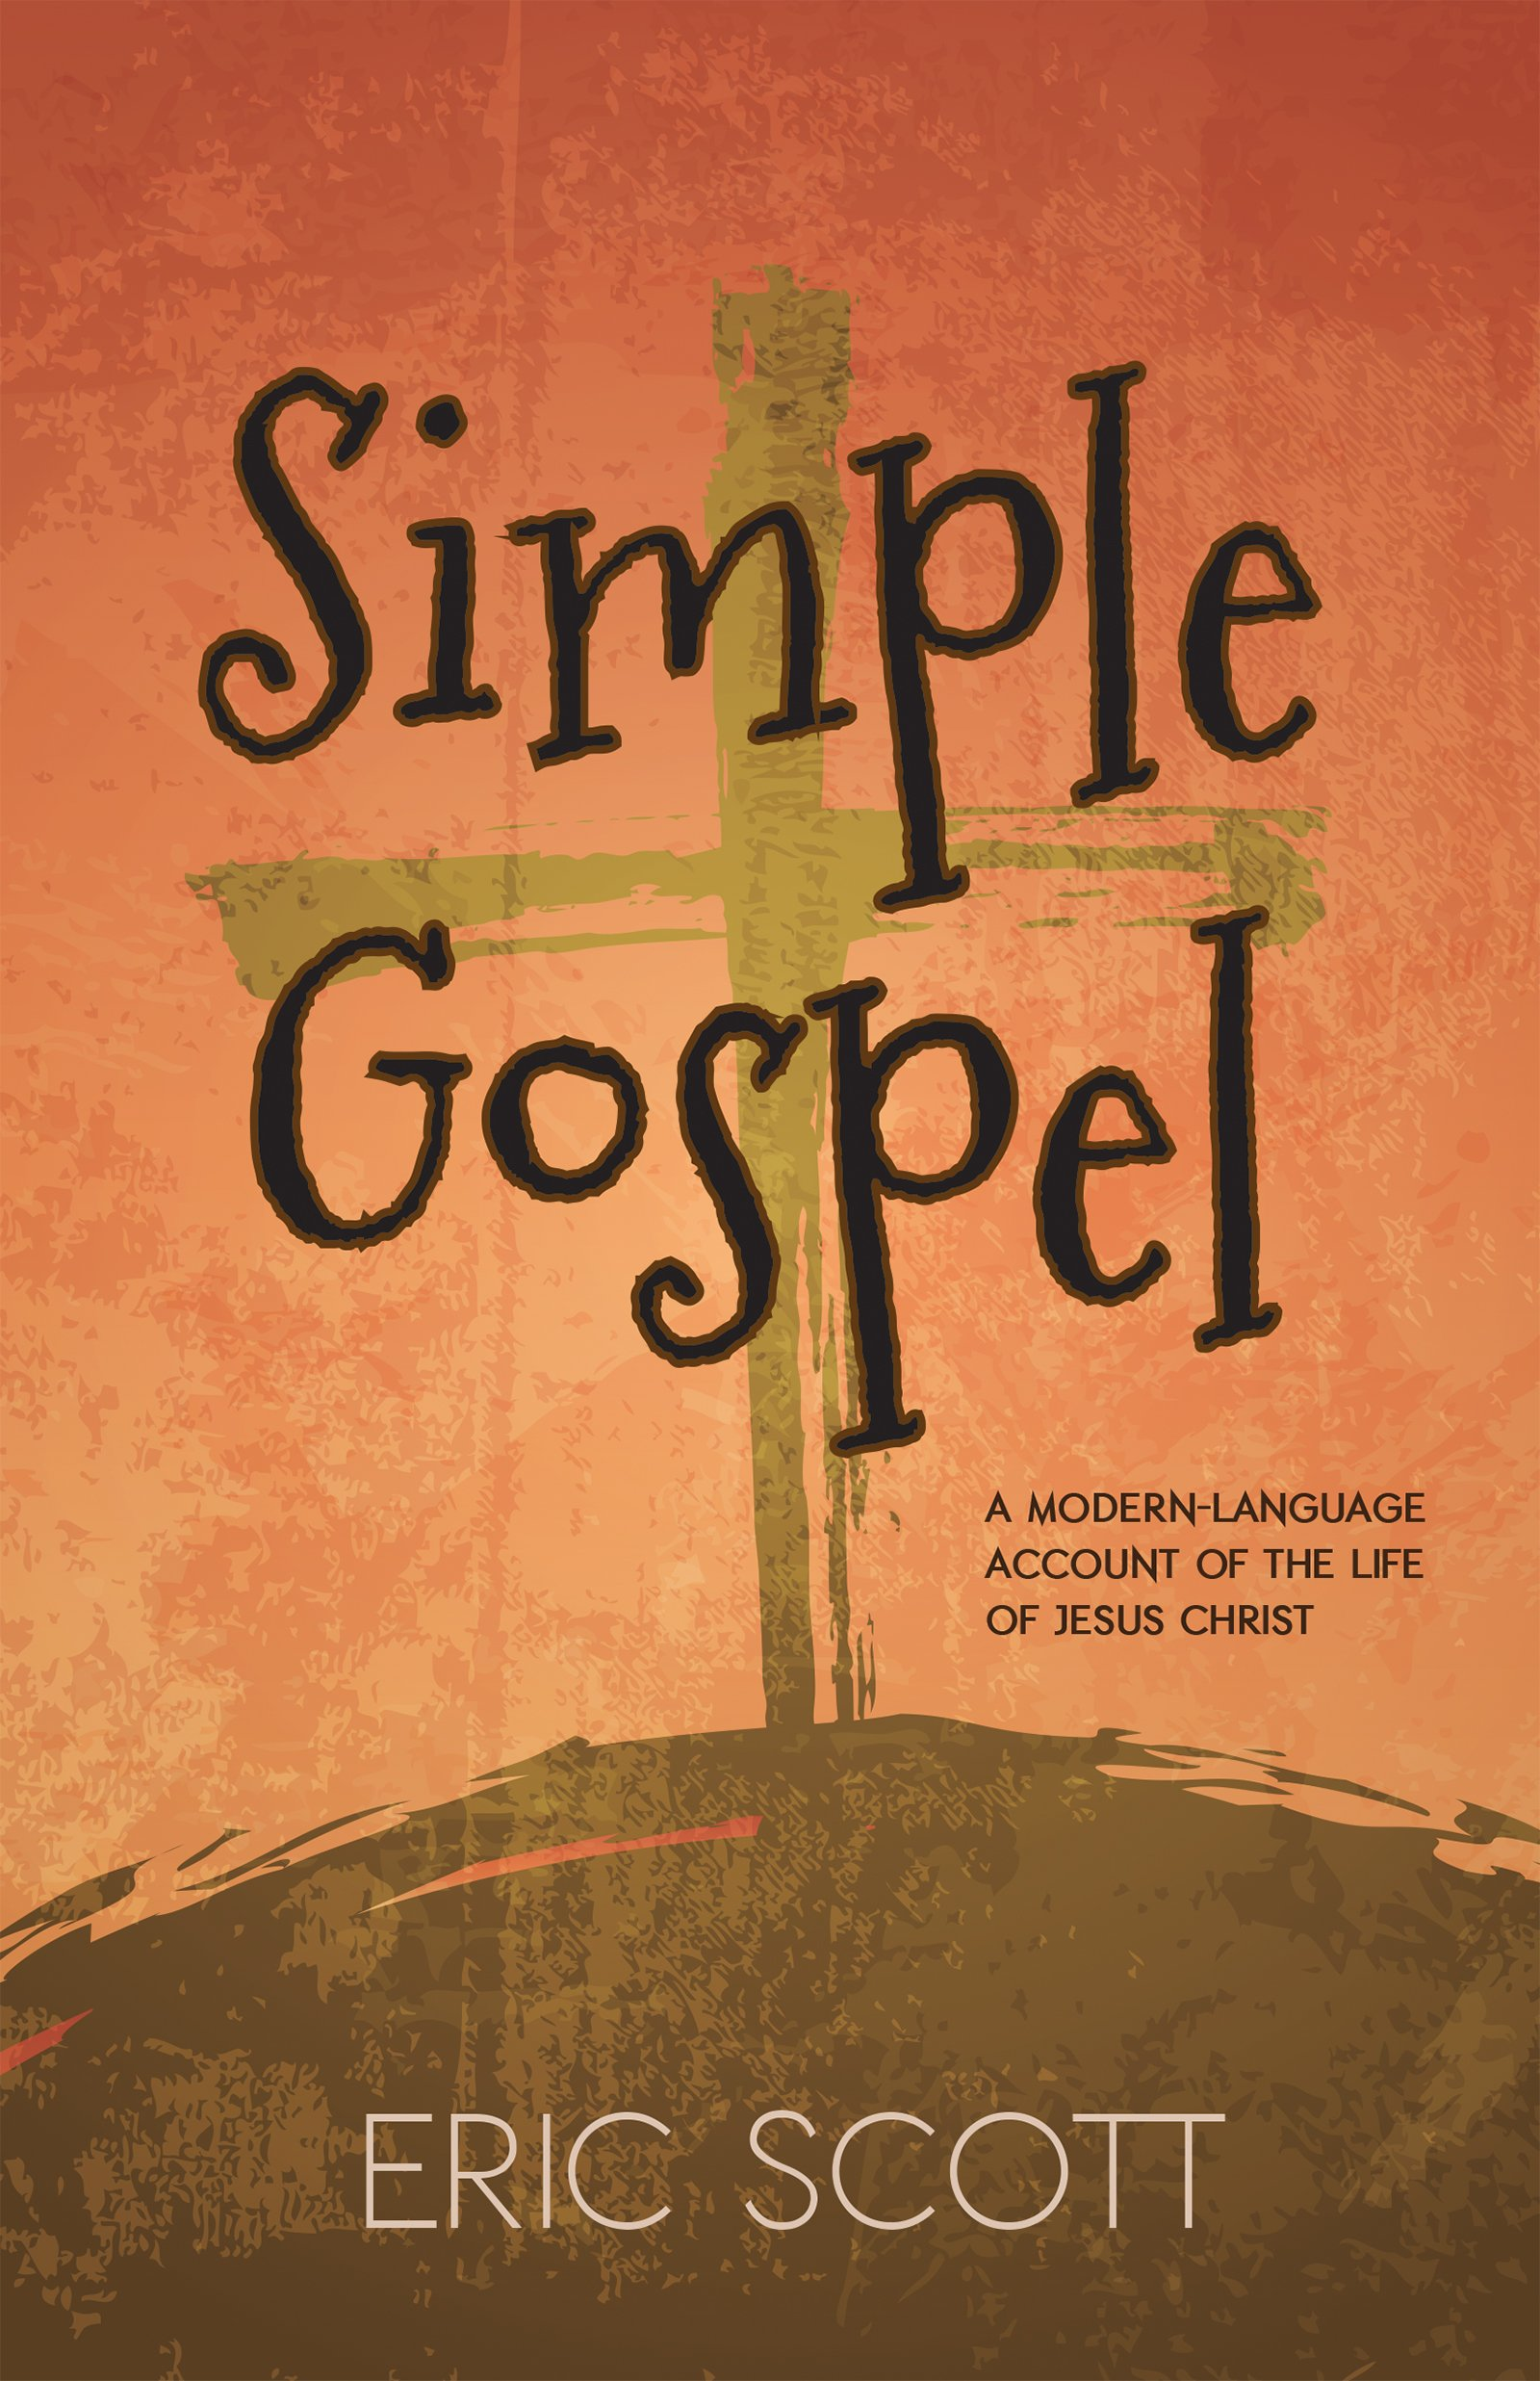 Simple Gospel: A Modern-Language Account of the Life of Jesus Christ by Bethany Press Short Run